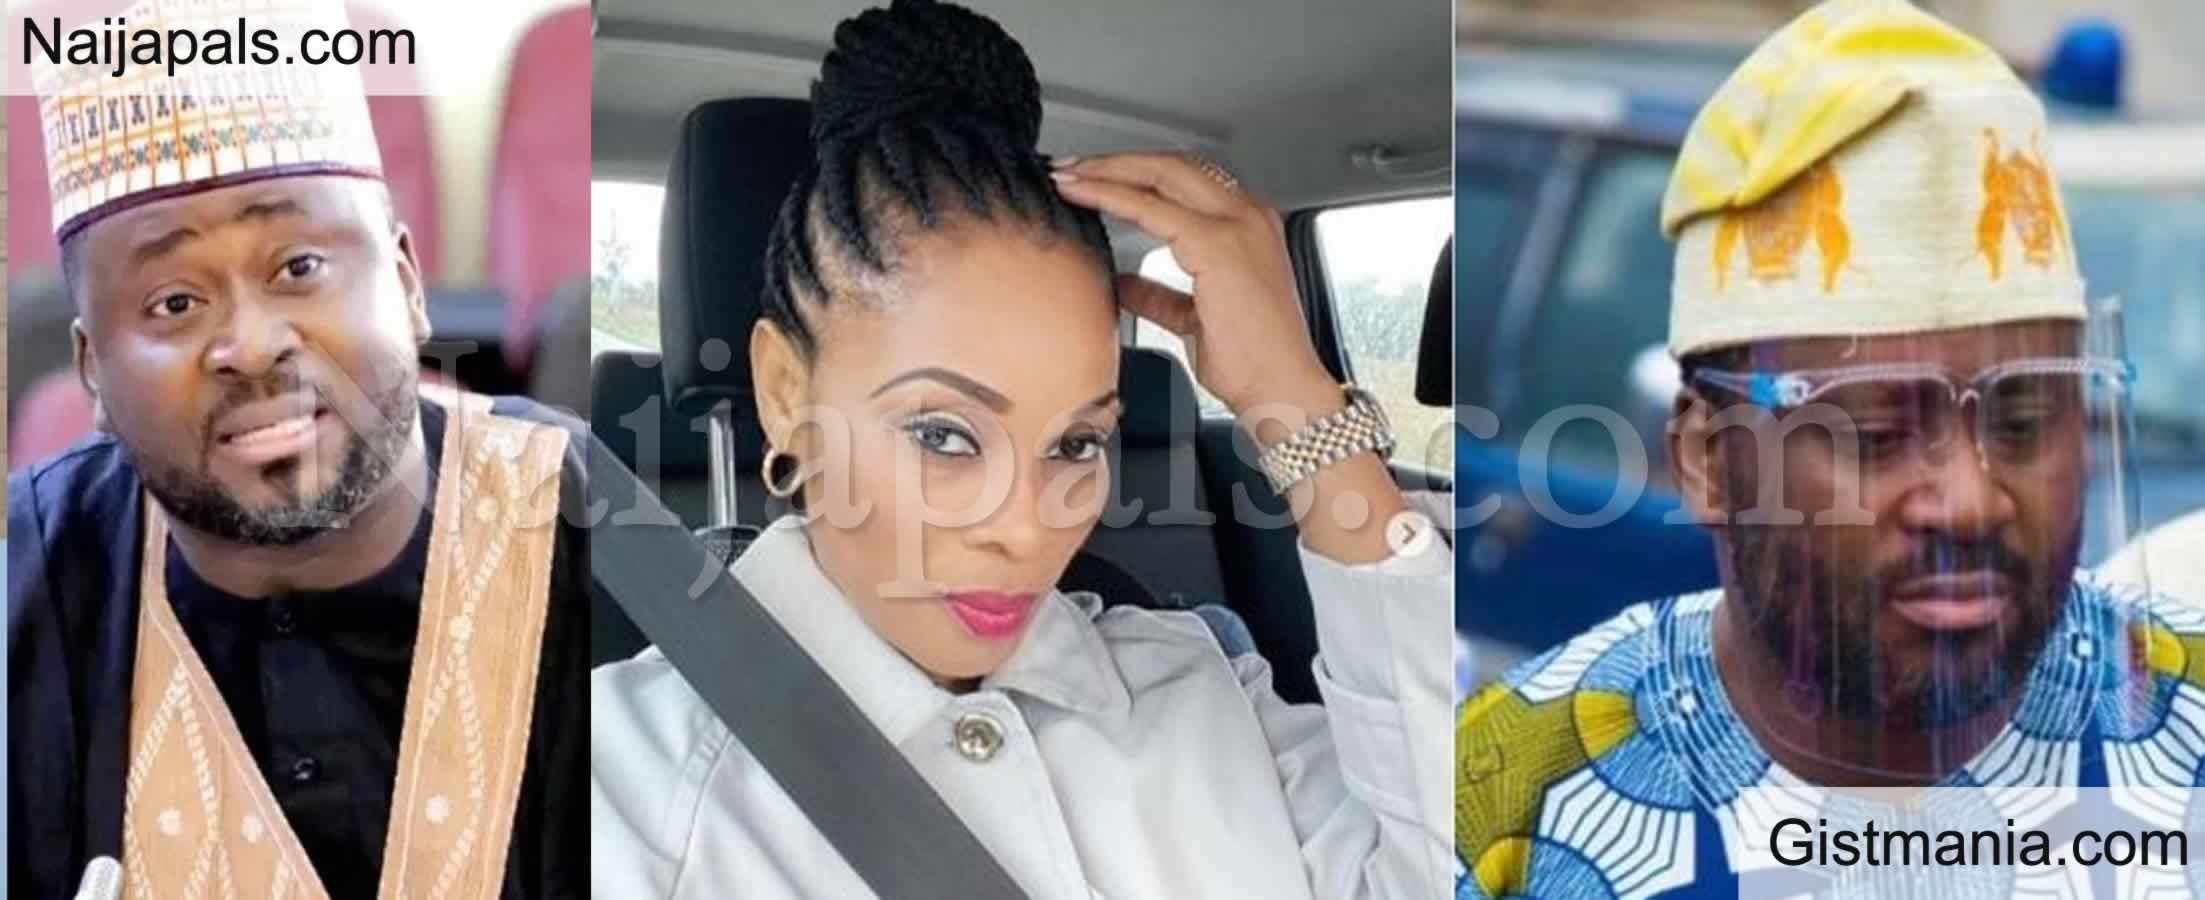 <img alt='.' class='lazyload' data-src='https://img.gistmania.com/emot/comment.gif' /> Power Does Corrupt: <b>Georgina Onuoha Shames Desmond Elliot For Belittling The Youths</b>